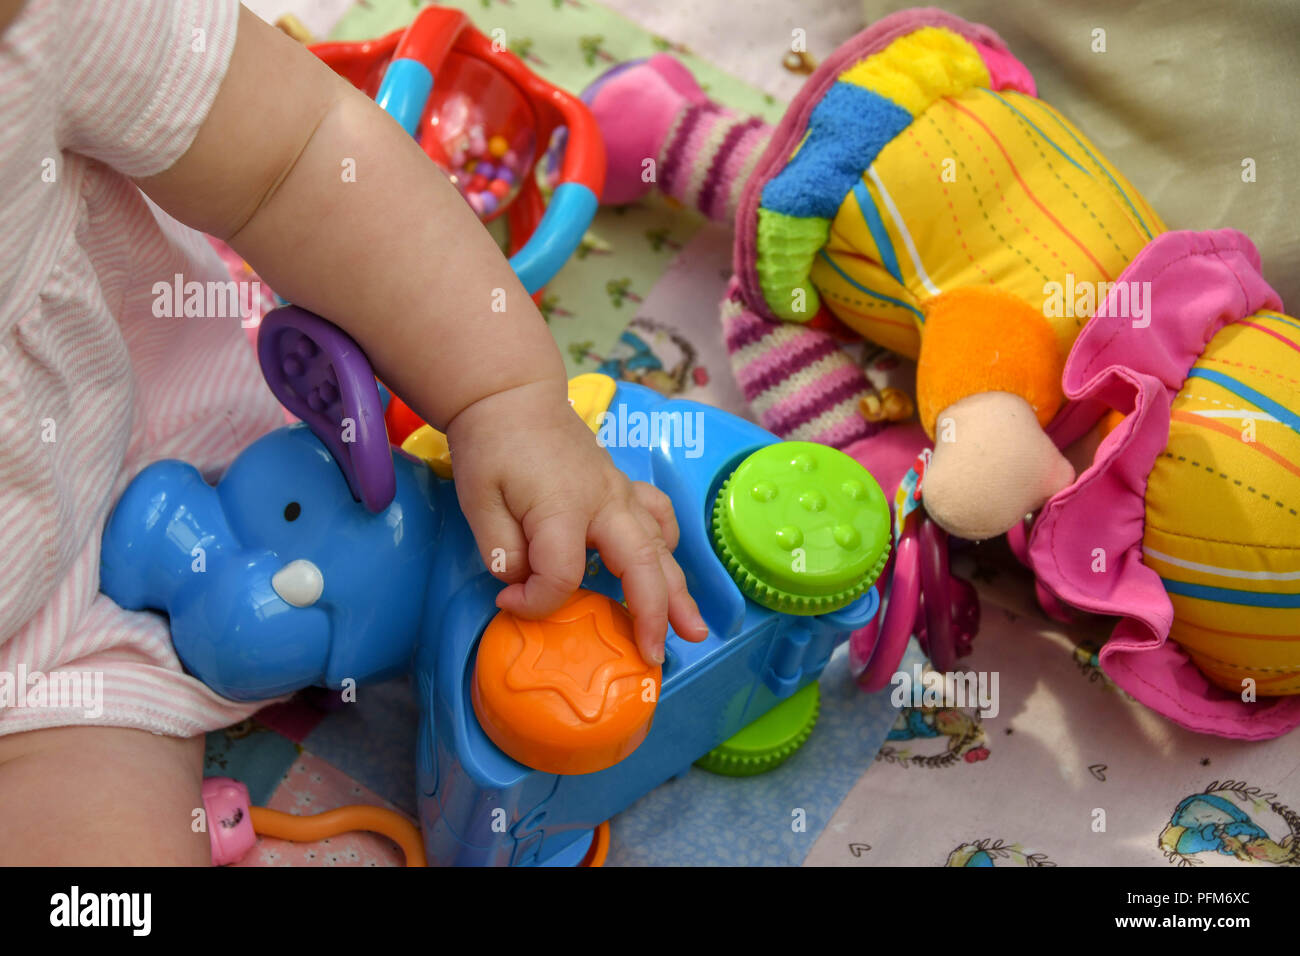 Close up of the hand of a baby playing with colourful plastic toy rings - Stock Image